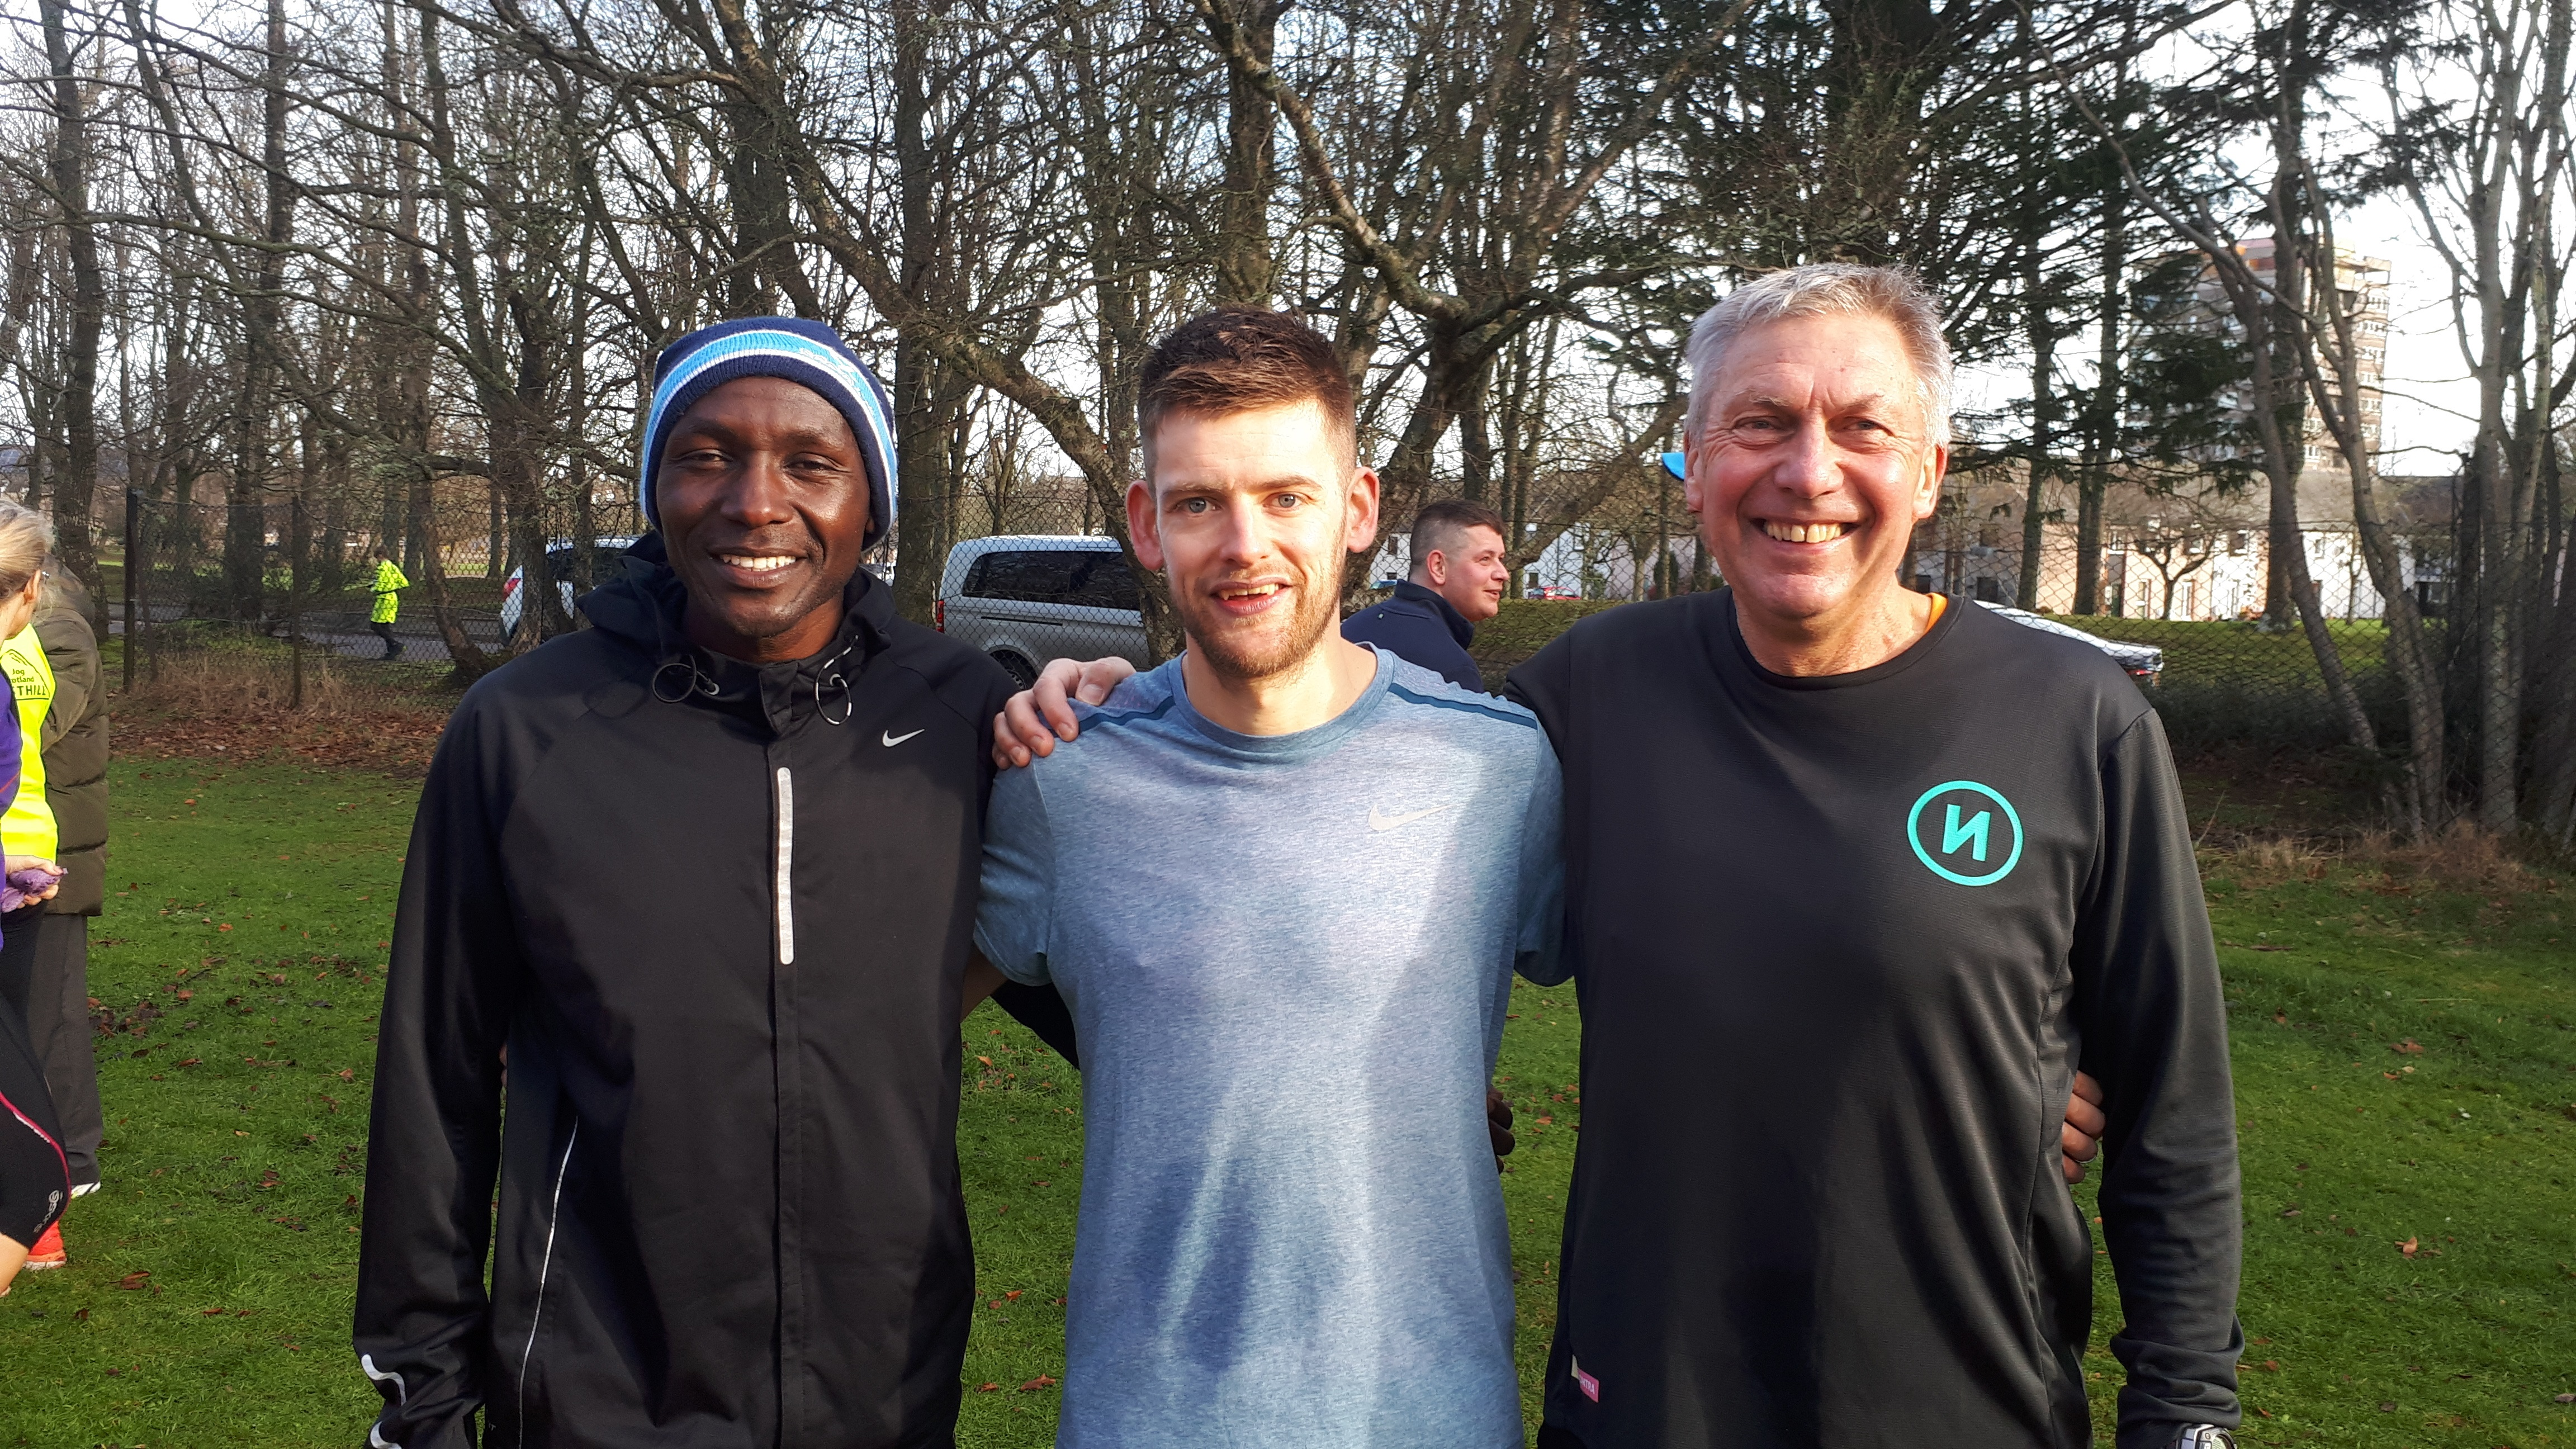 Left to right, Gideon Gathimba, Cameron Strachan and Dave Moorcroft.